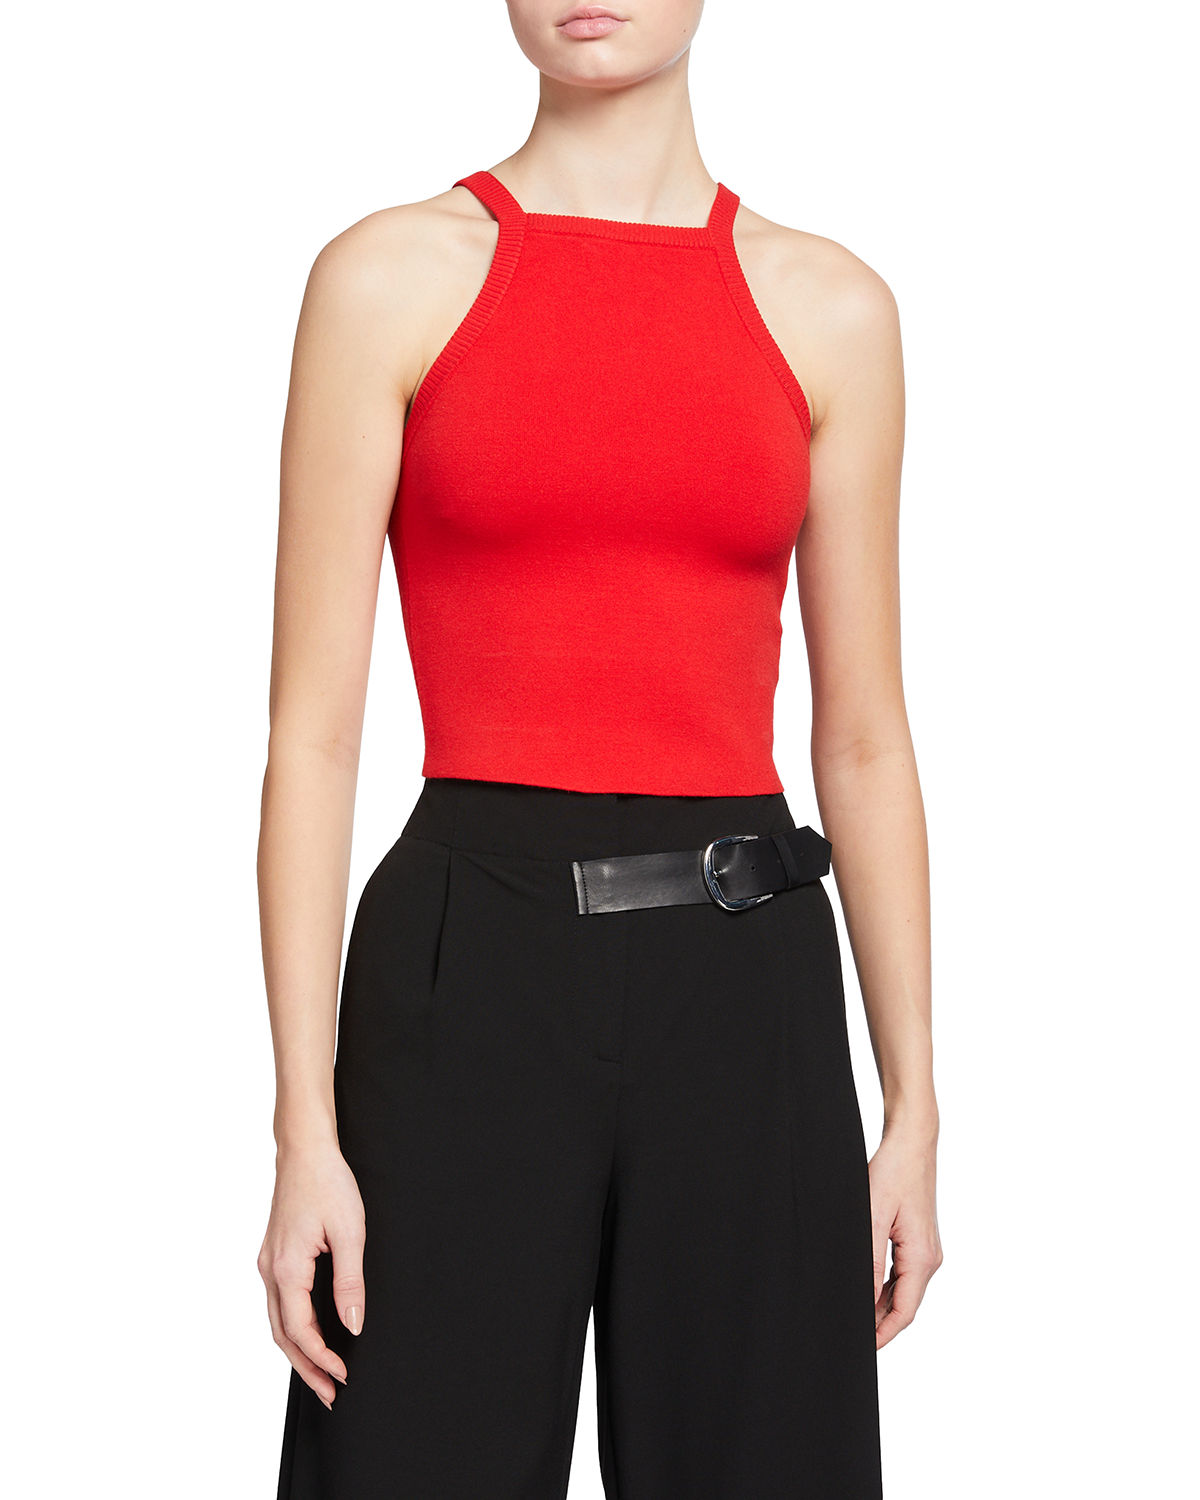 Alice And Olivia Knits CABOT HIGH-NECK FITTED CROP TANK